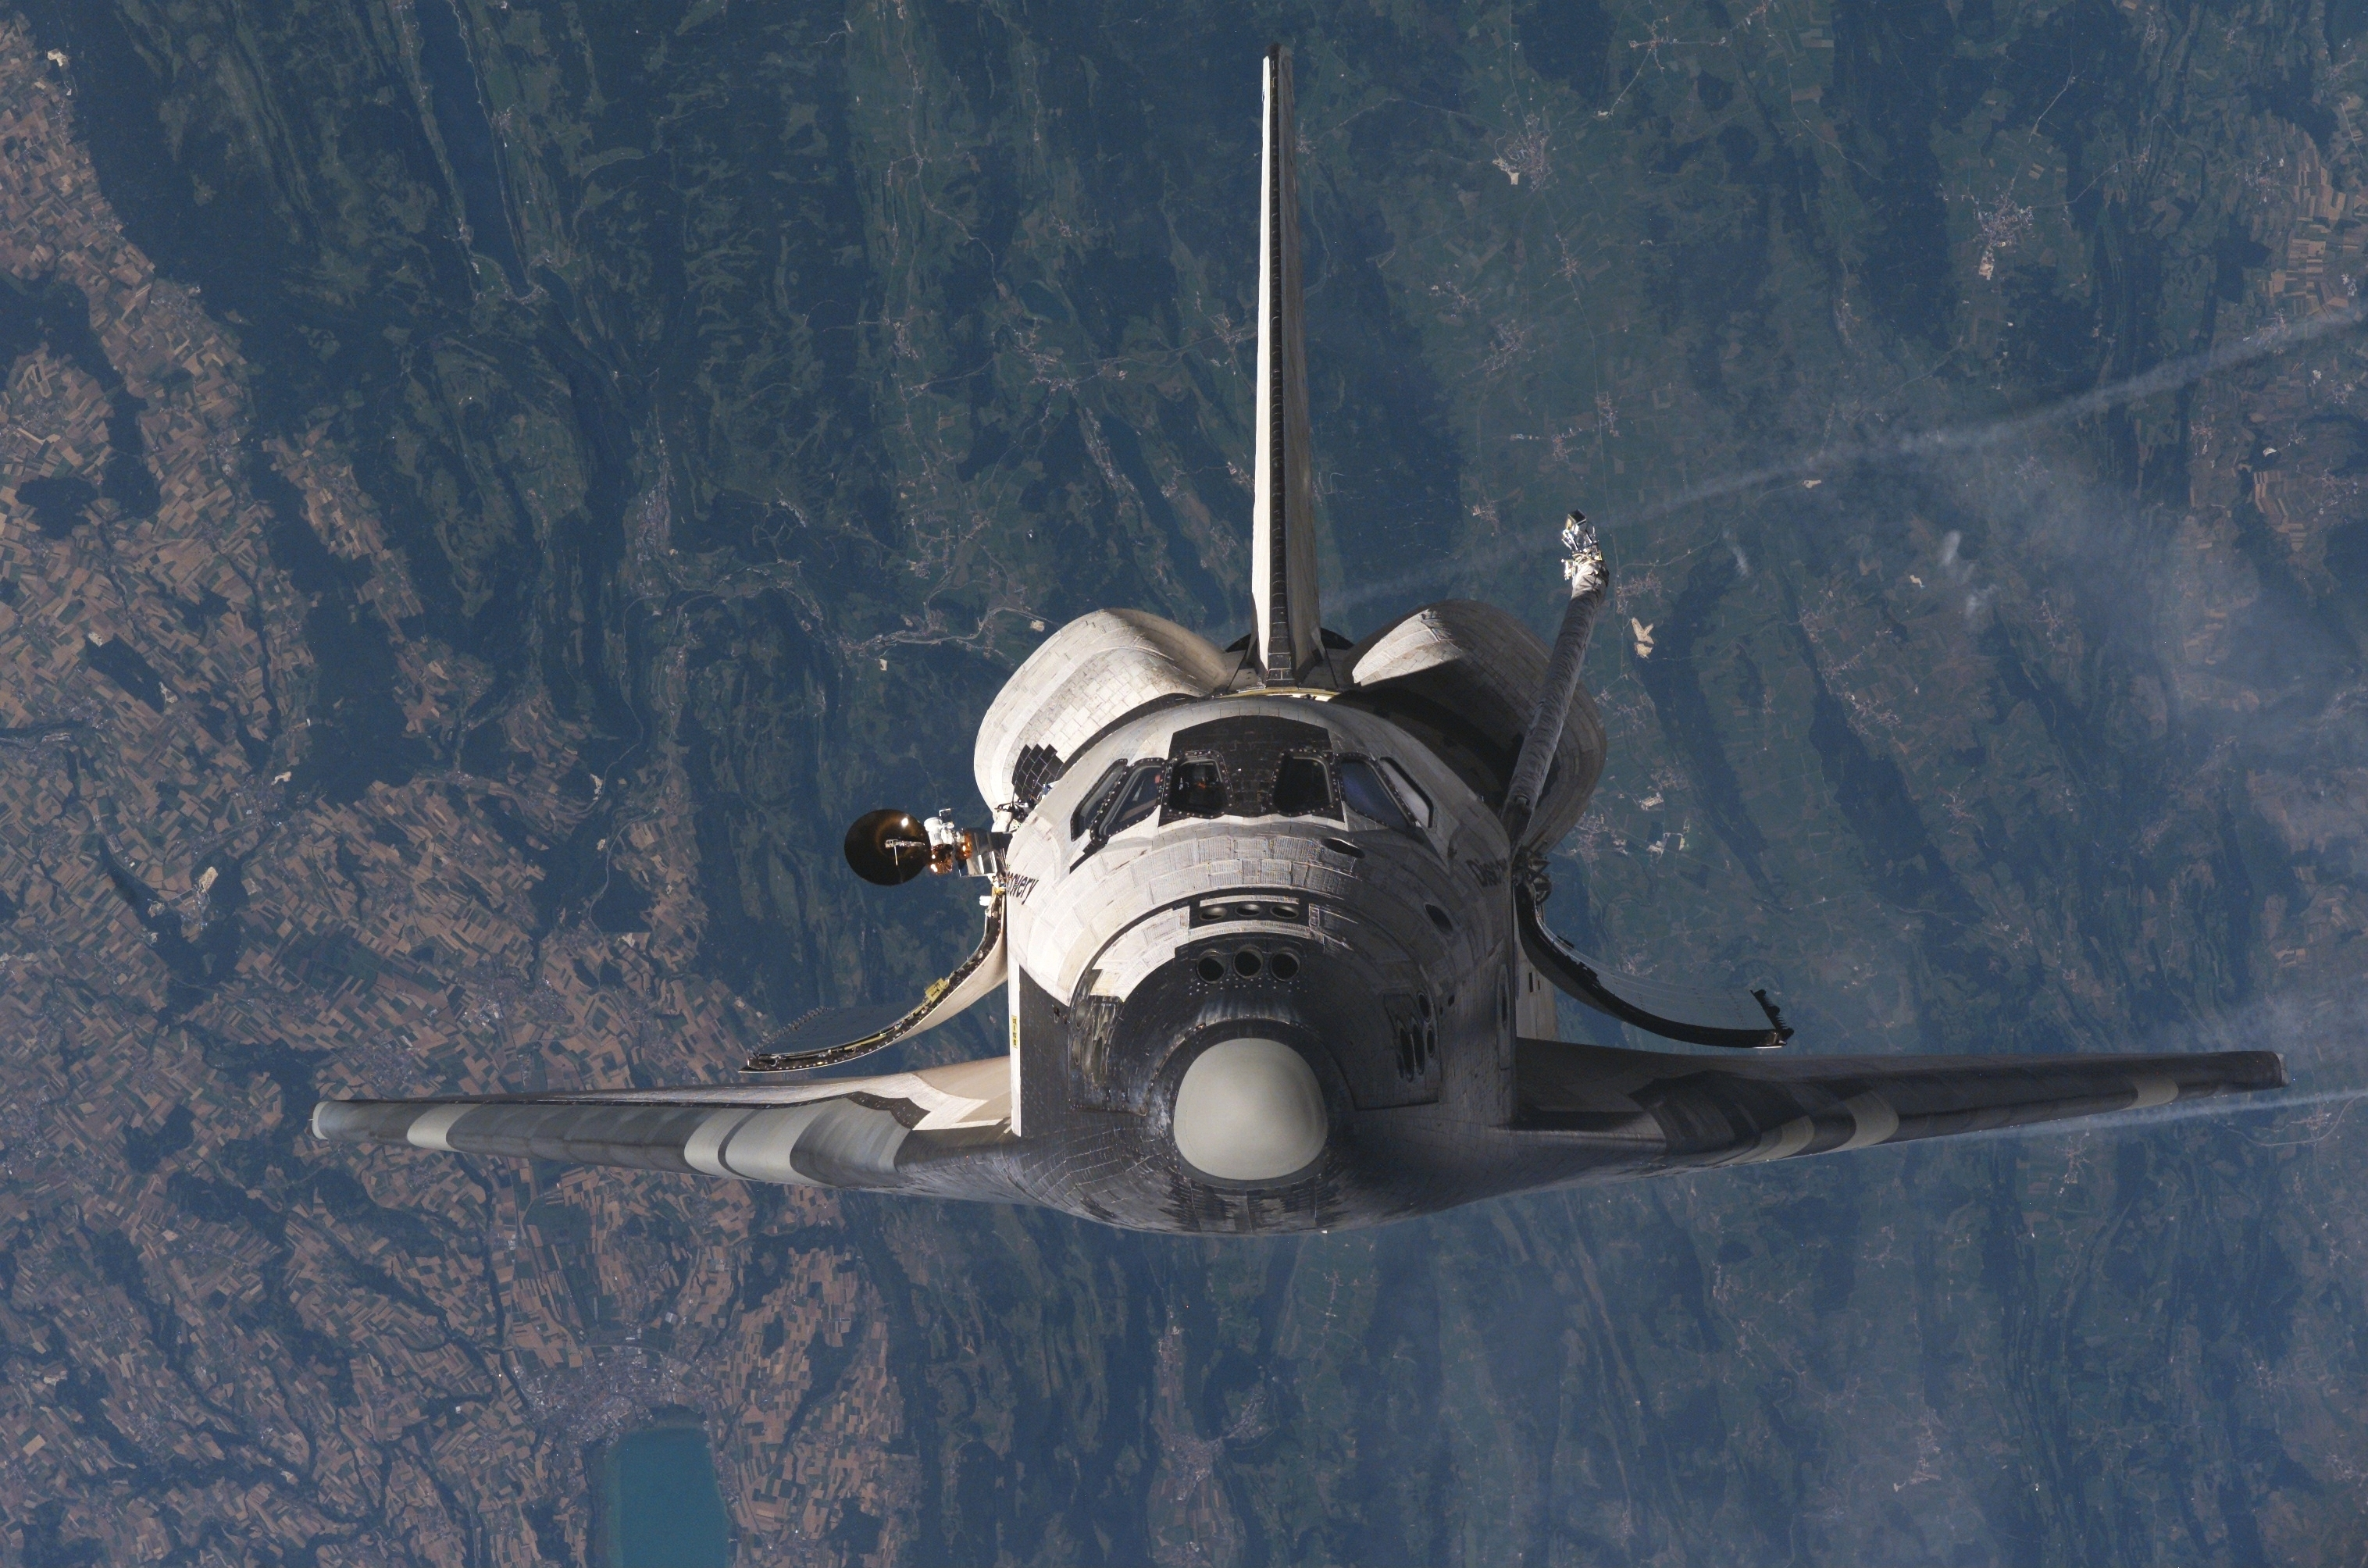 Space Shuttle Top View - Pics about space